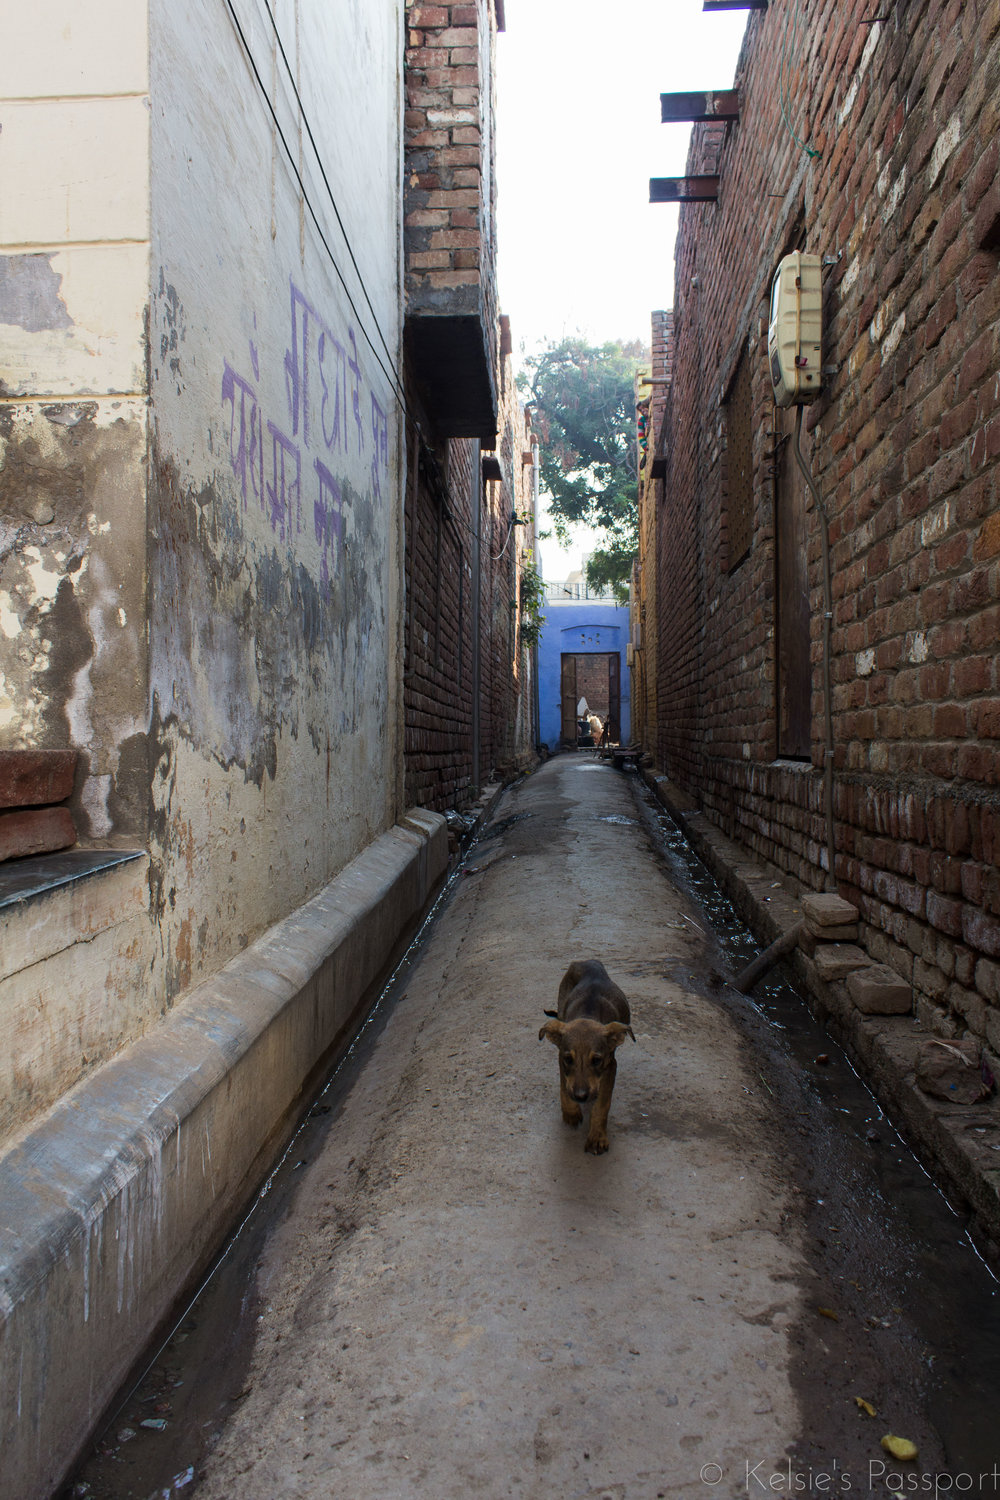 Dog-lovers beware. Strays are everywhere and their sad skinny faces will break your heart.